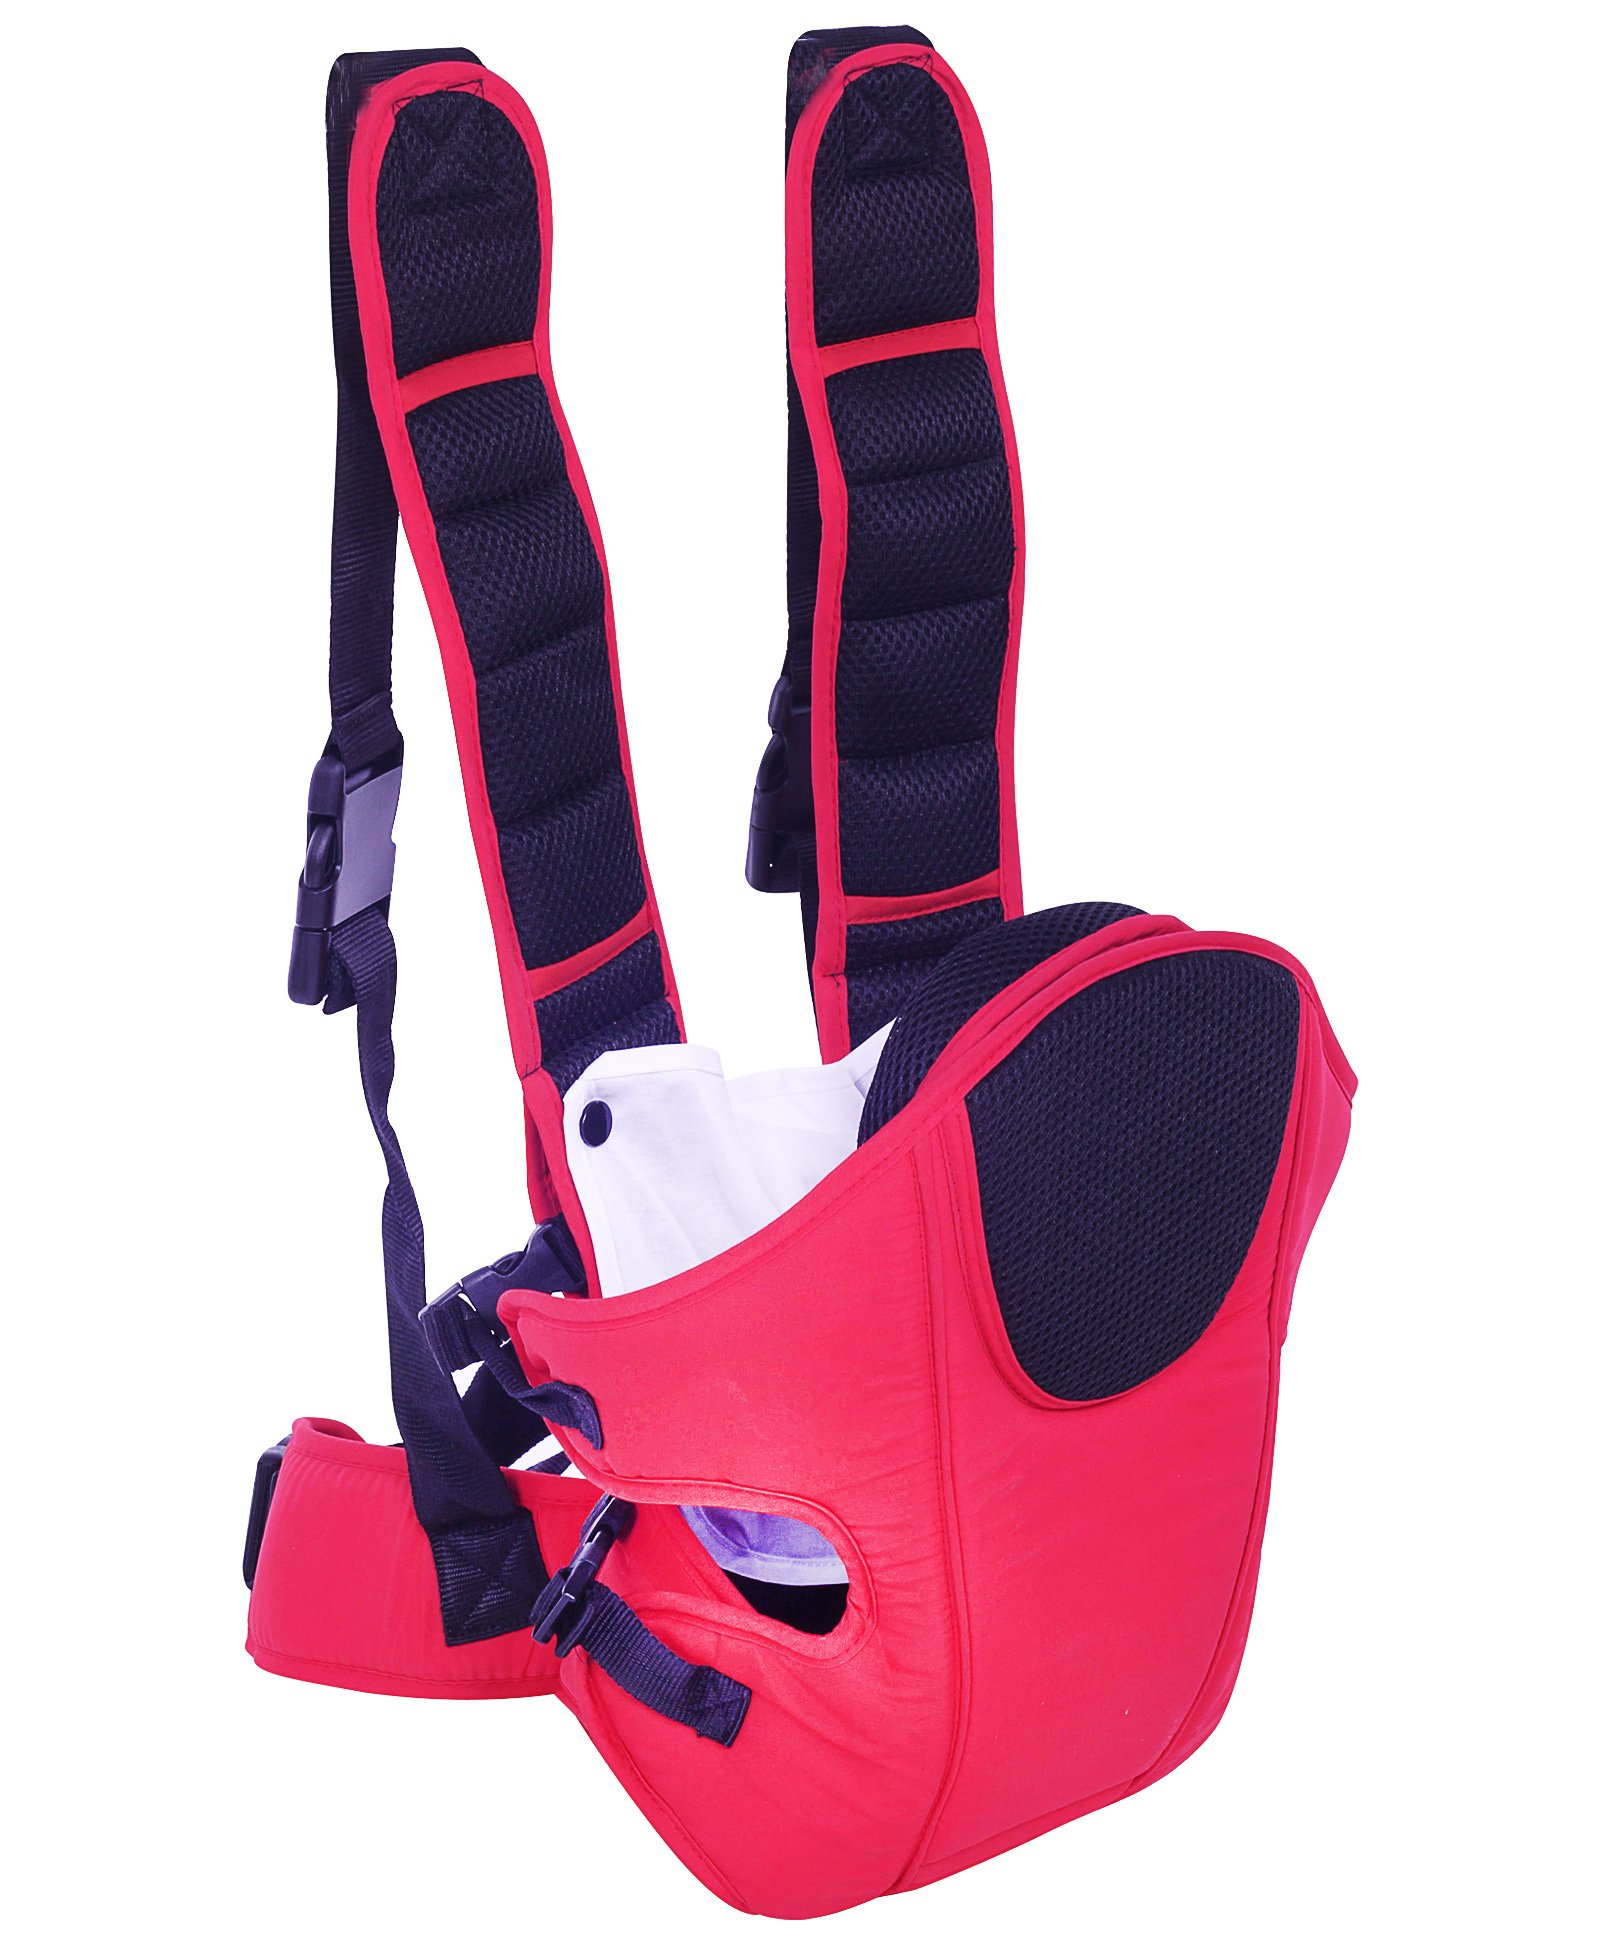 3 in 1 Baby Carrier Red And Black - CA-5011